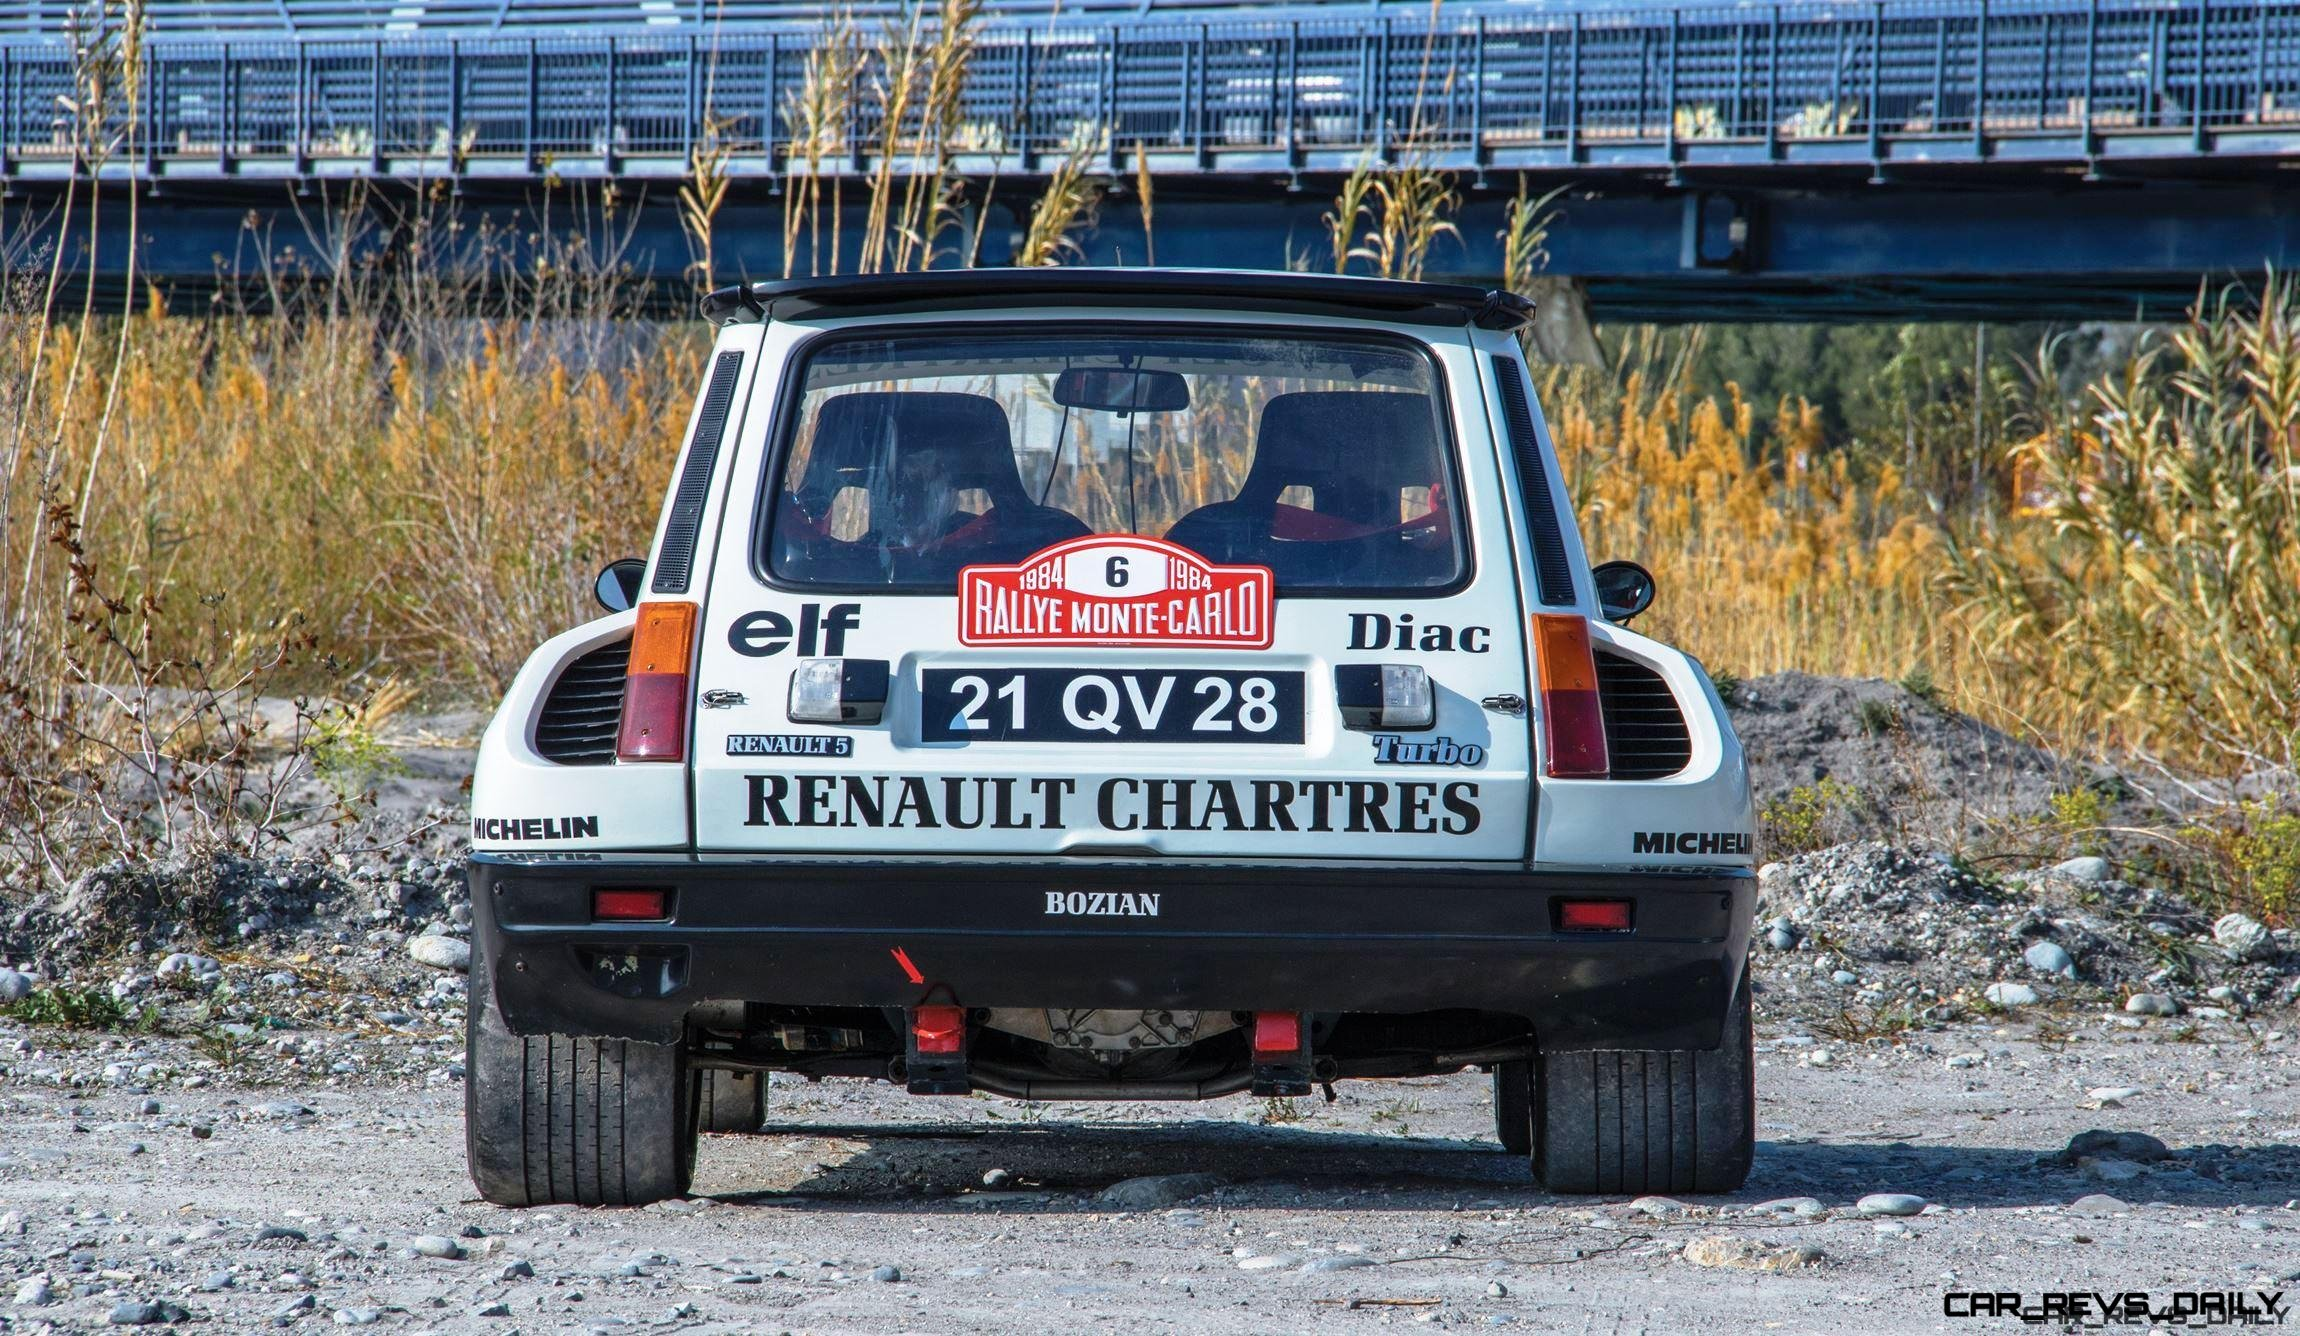 RM Monaco 2016 - 1982 Renault 5 Turbo Group 4 Rally Car 10